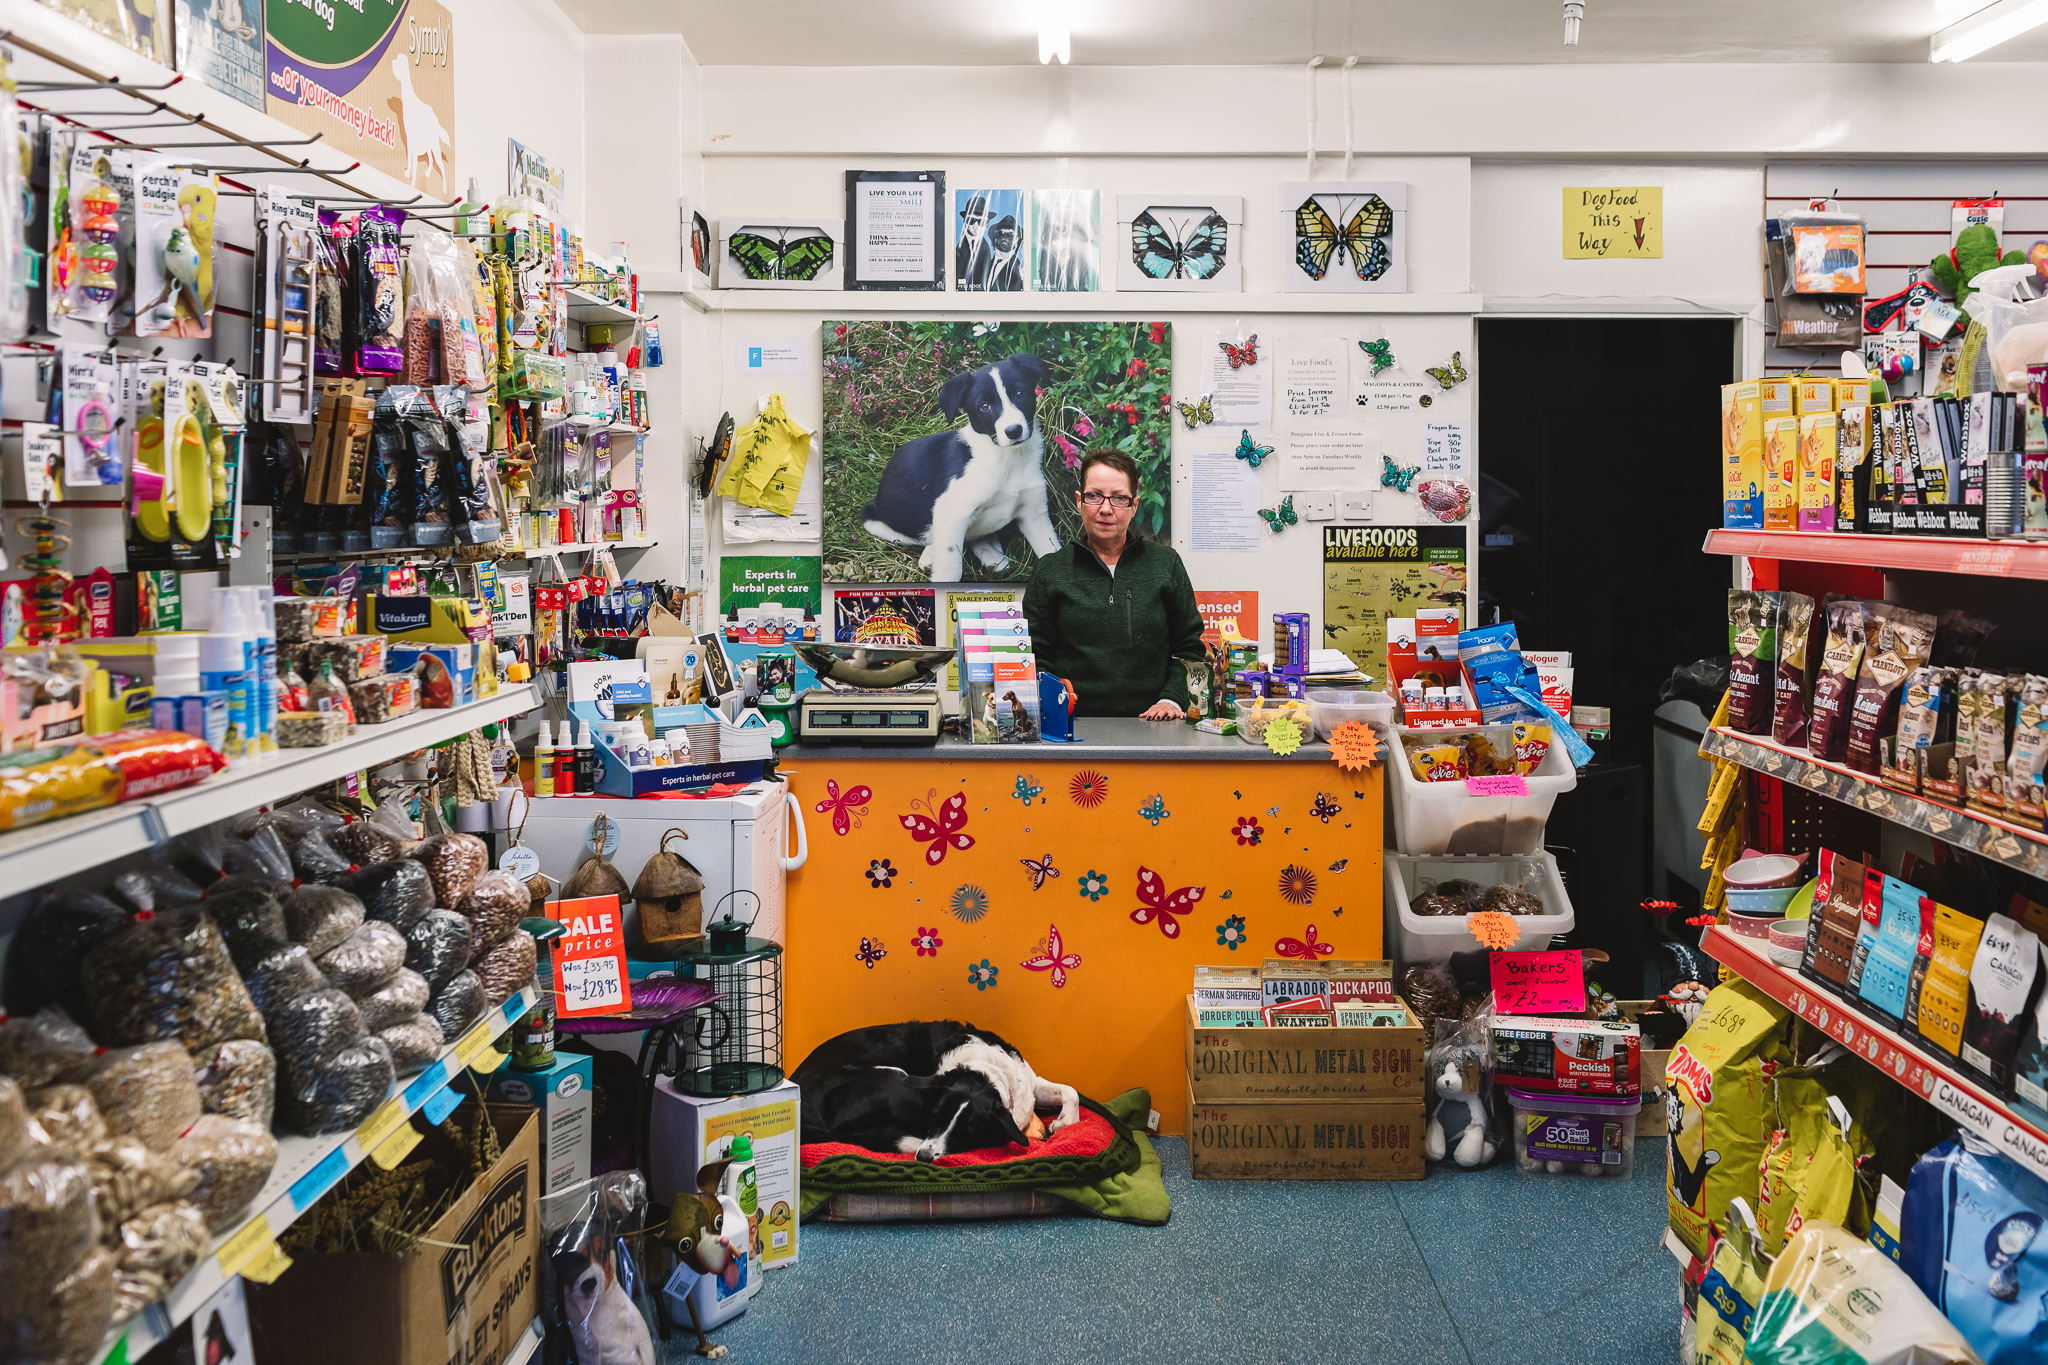 Wide image inside of a pet shop, there is shelves stacked full of goods for pets leading to a counter with the woman shop keeper behind, wearing a green jumper and purple glasses and short hair. In front of the orange counter adorned with flower and butterfly stickers there is a black and white dog lying down.